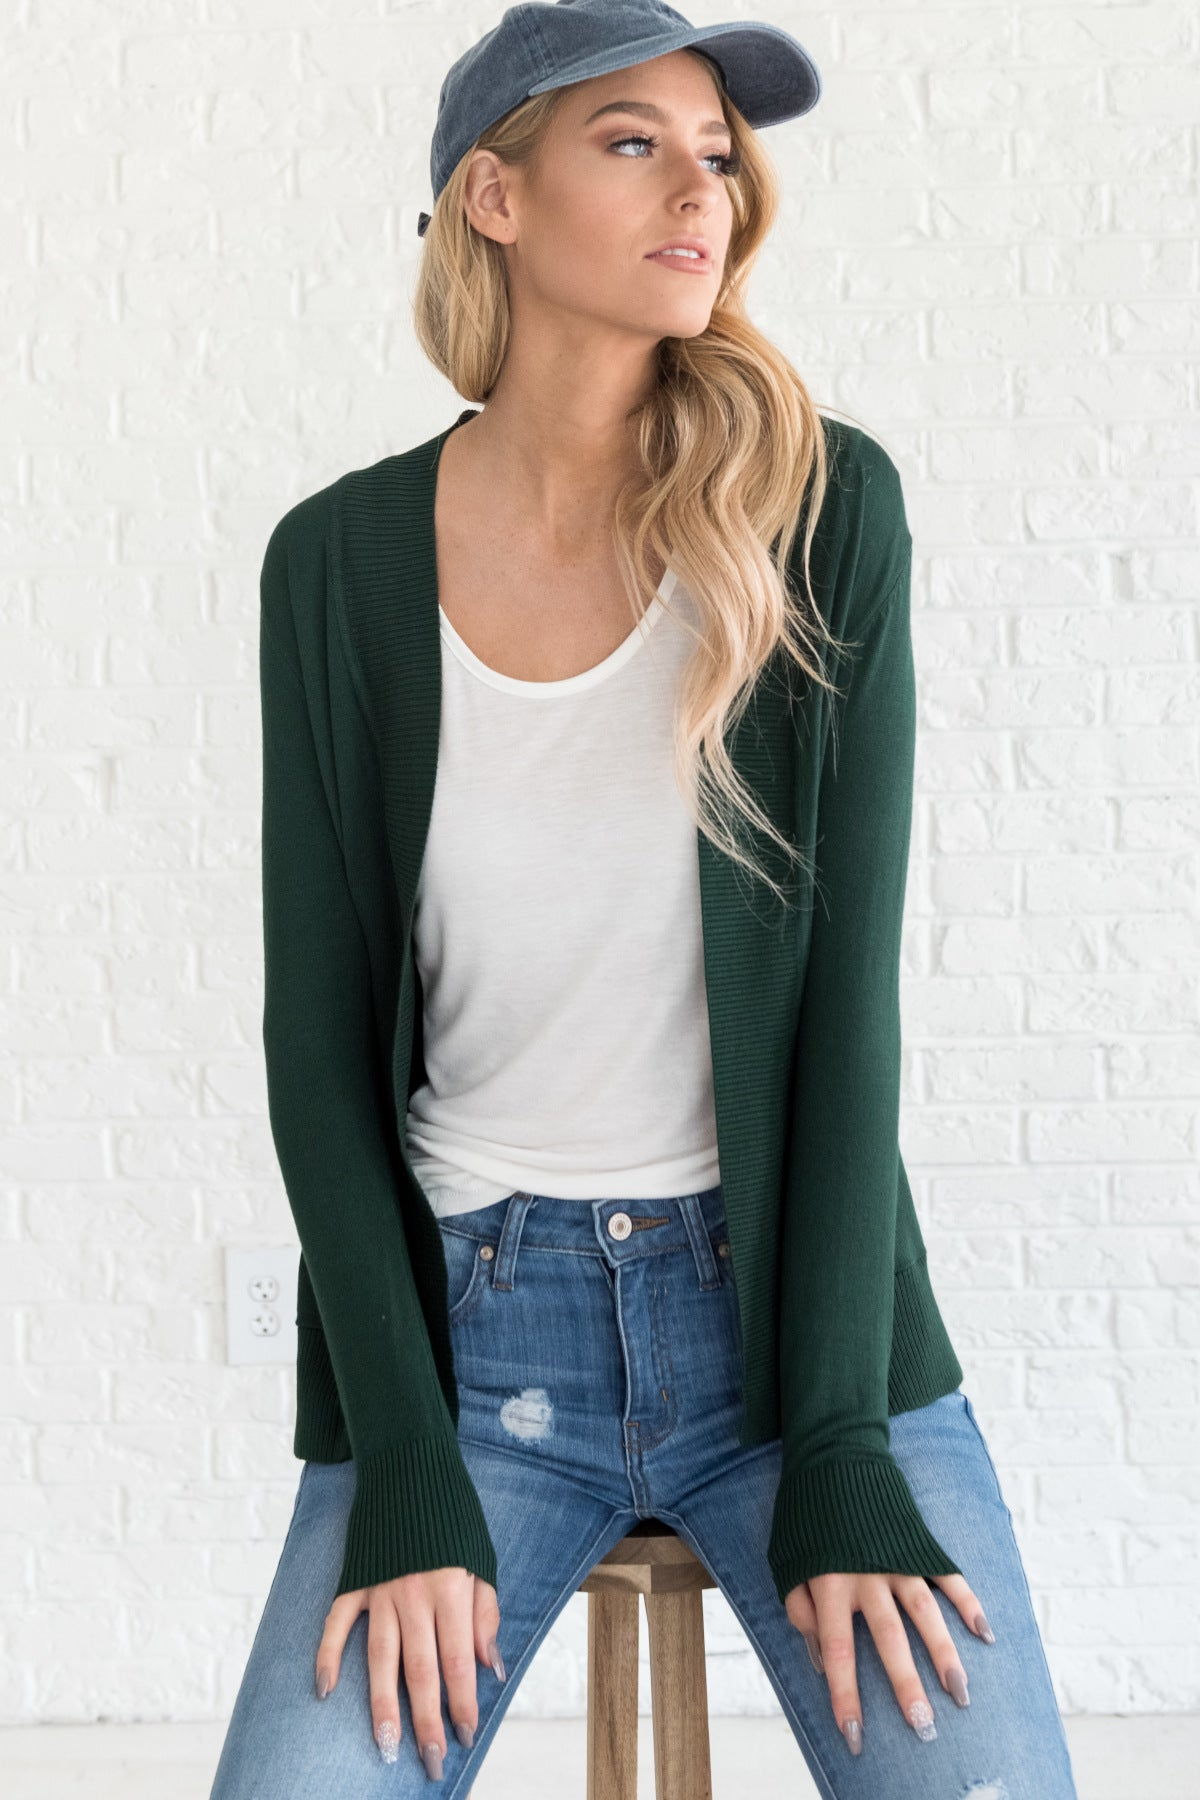 Emerald Green Lightweight Summer Cardigans